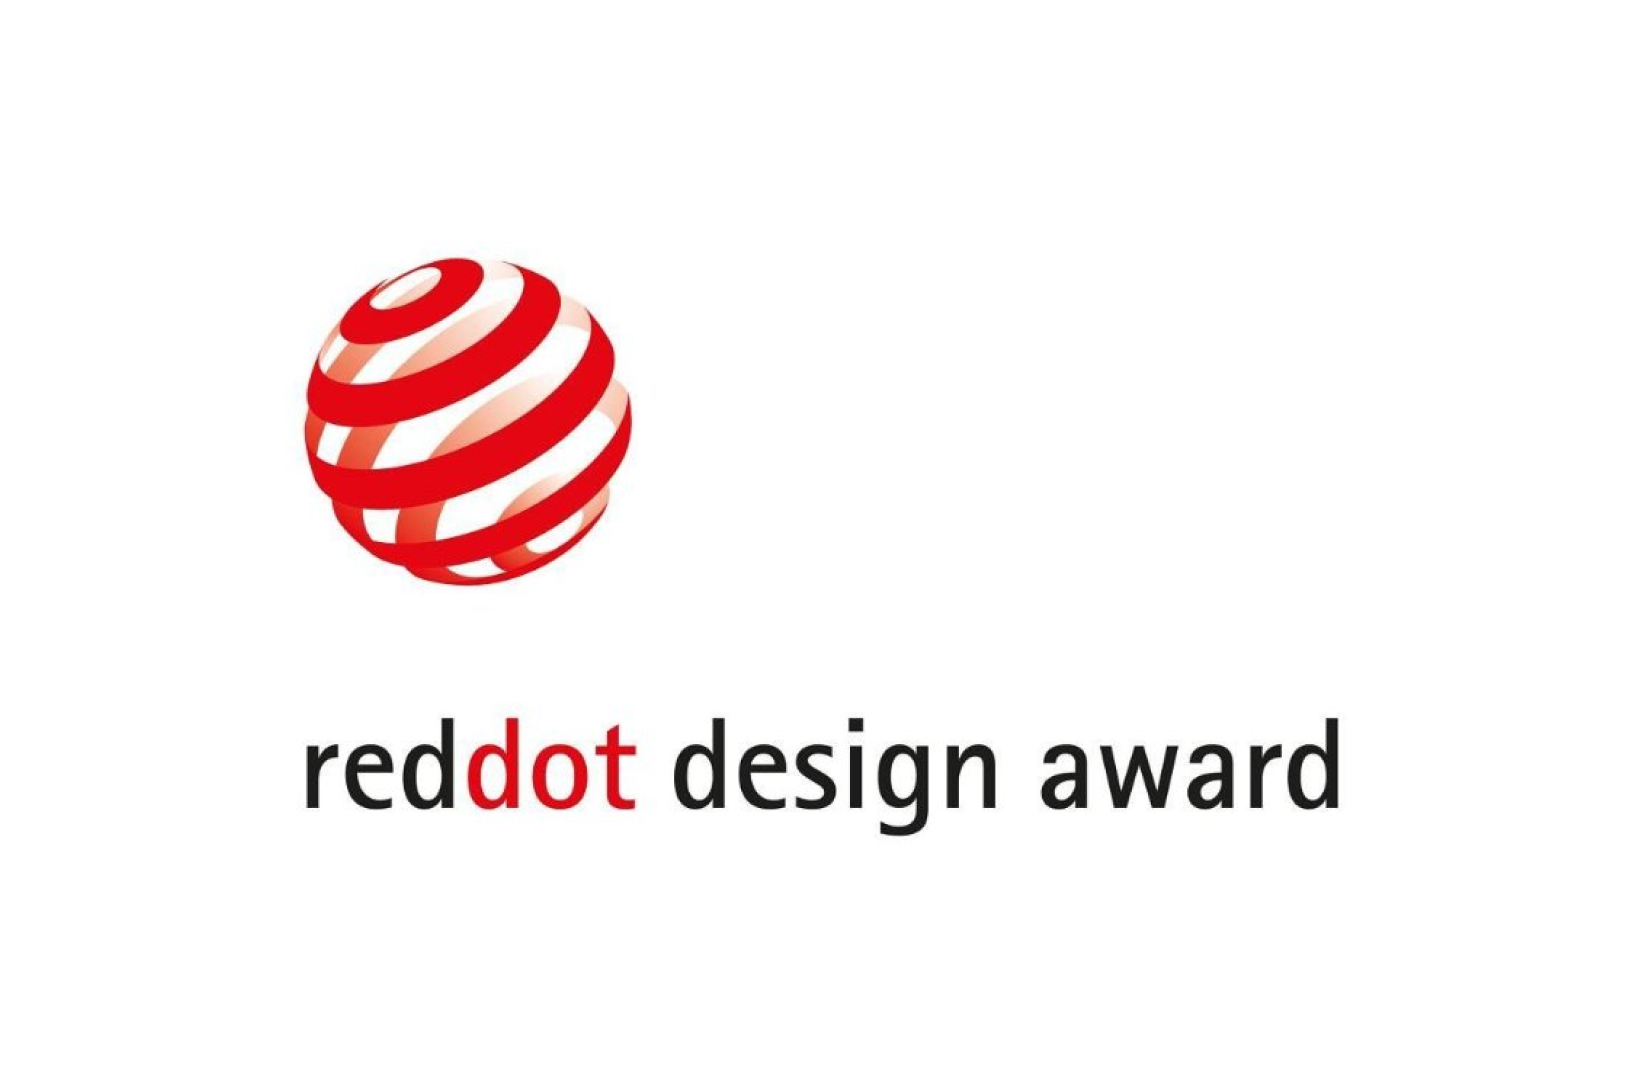 Reddot Design Award 2018 - In house designer awarded for Smart Remote in the Product Design category. Product design by eliumstudio.